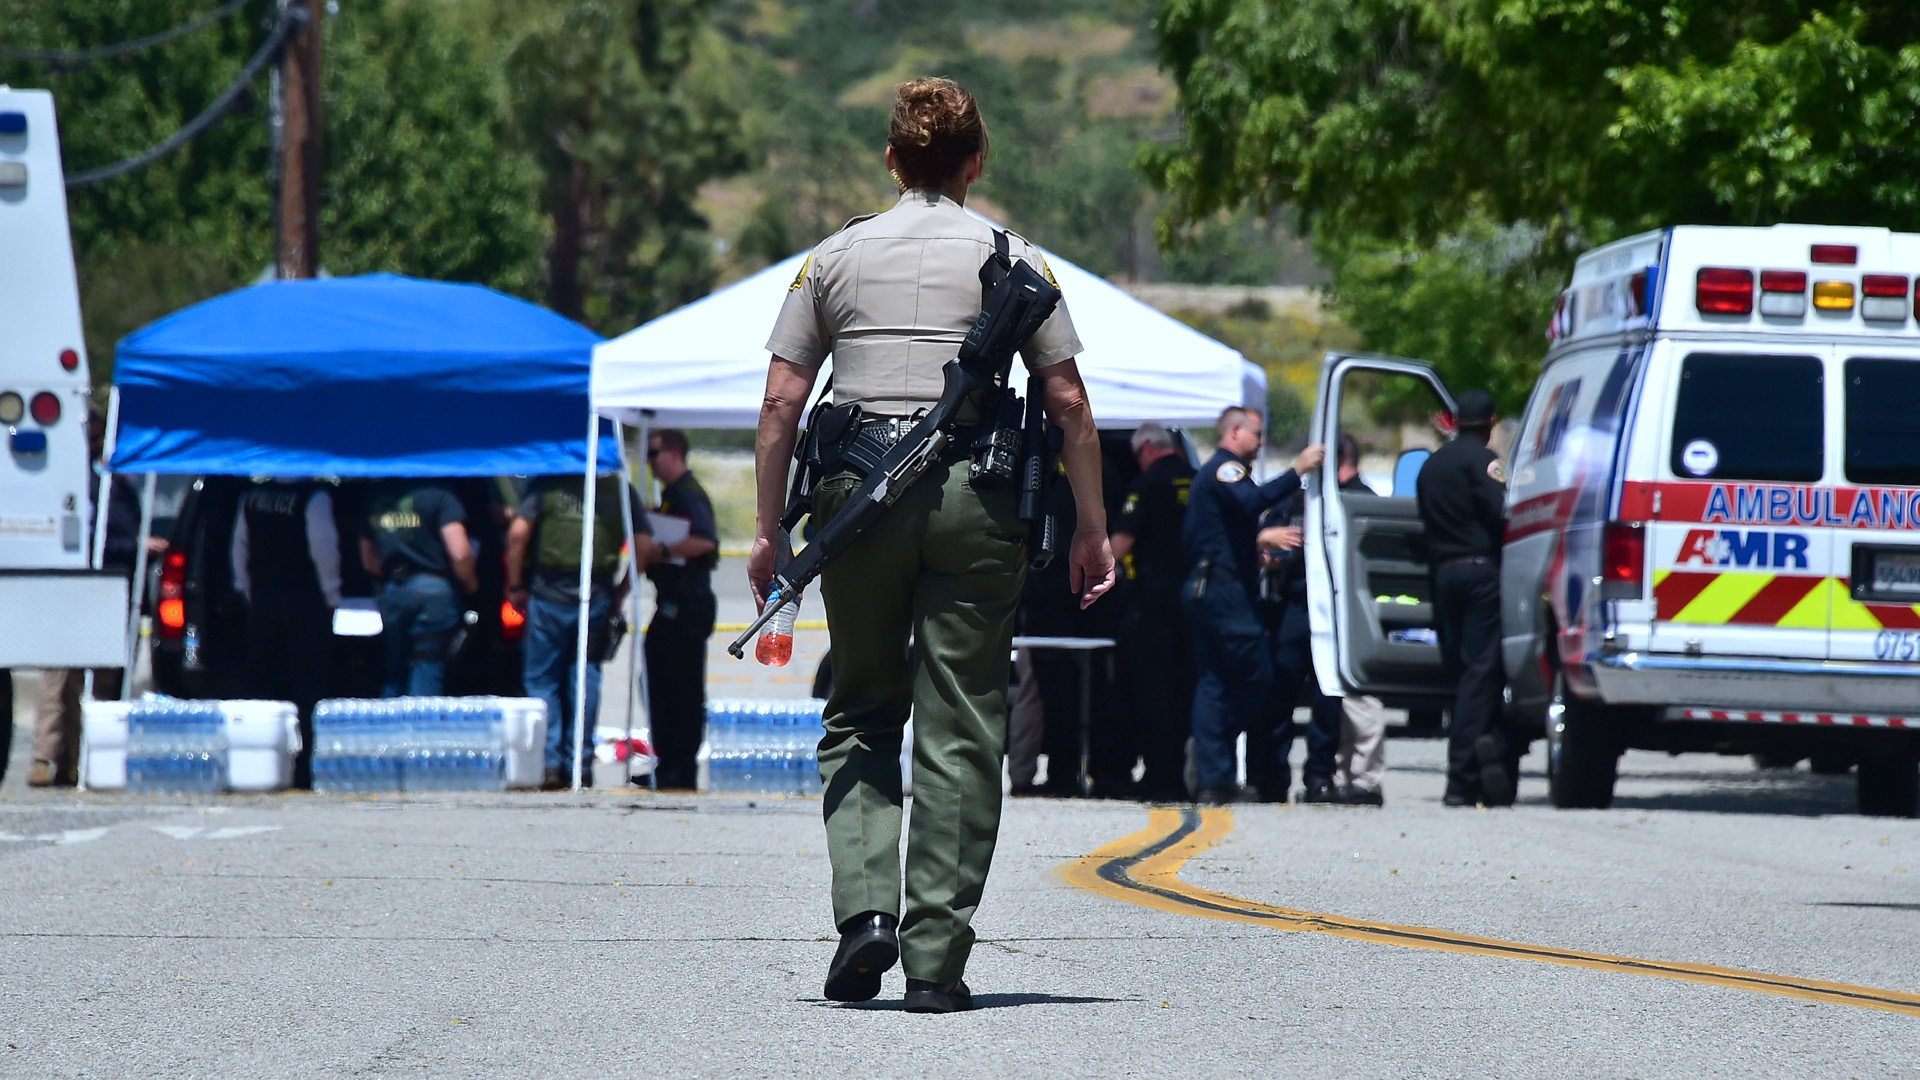 Law enforcement personnel are seen outside a closed-off North Park Elementary School in San Bernardino on April 10, 2017, following a shooting at the school. (Credit: Frederic J. Brown/AFP/Getty Images)